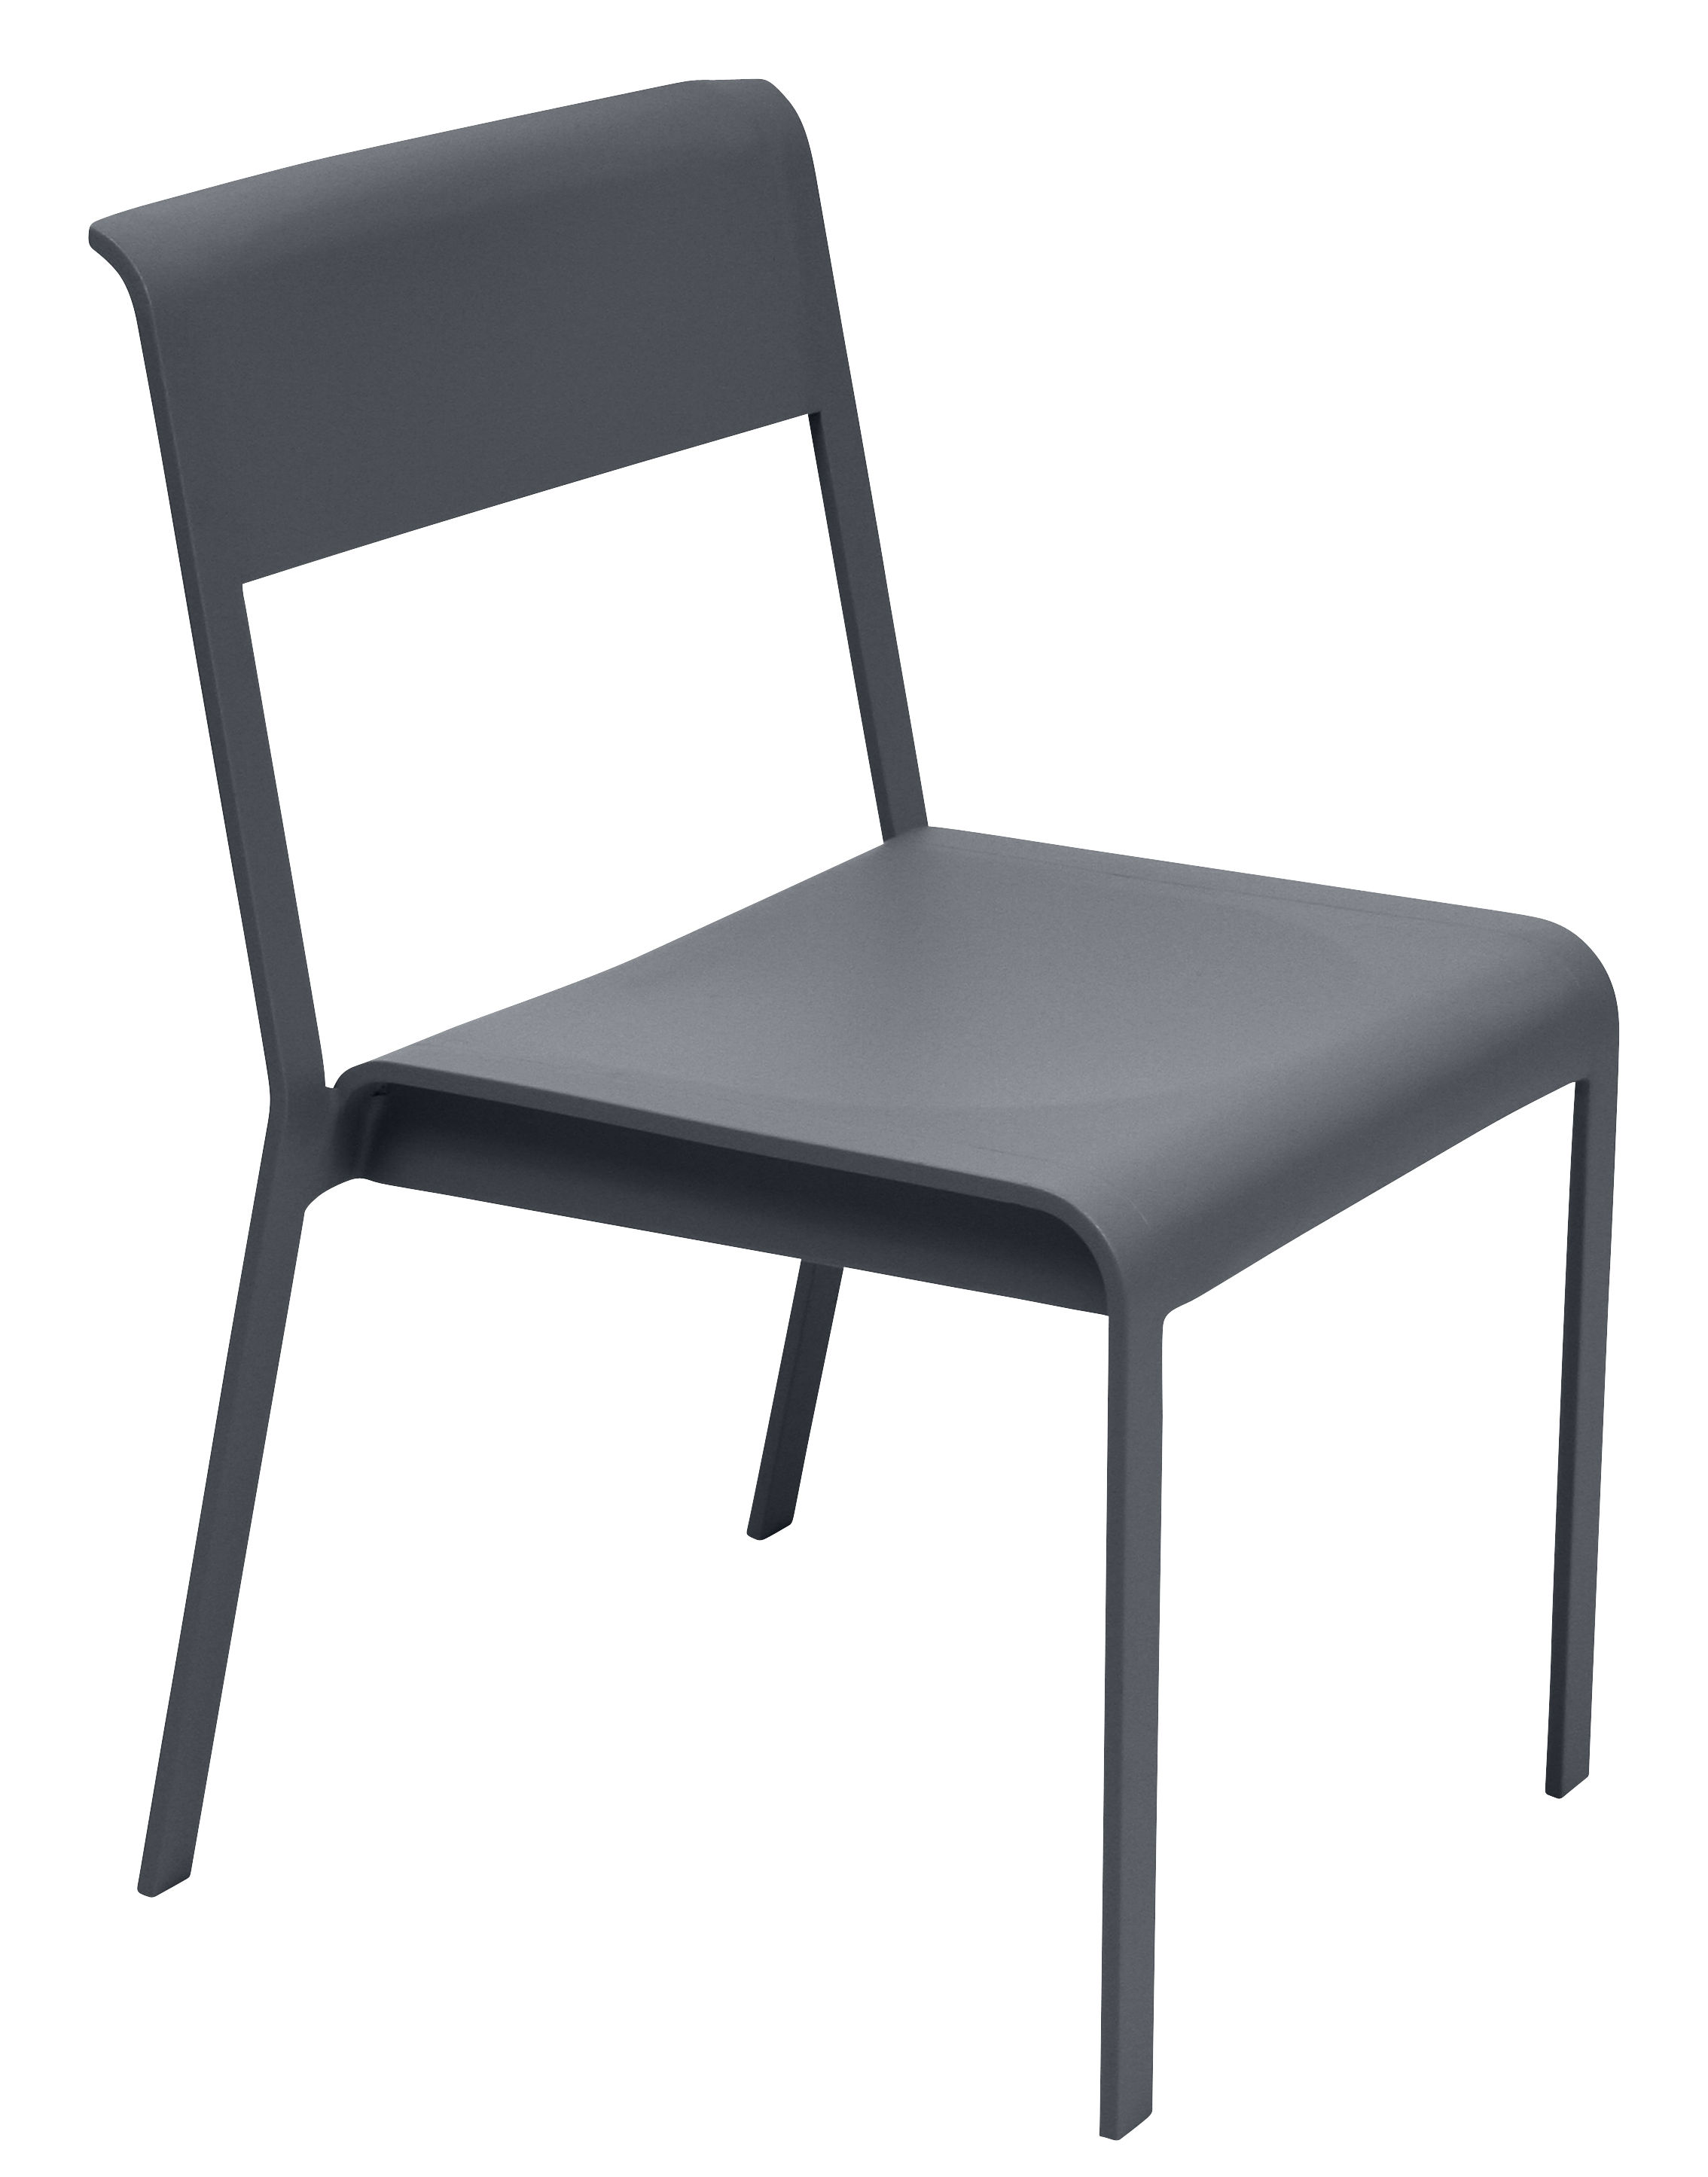 Furniture - Chairs - Bellevie Stacking chair - Metal by Fermob - Anthracite - Lacquered aluminium